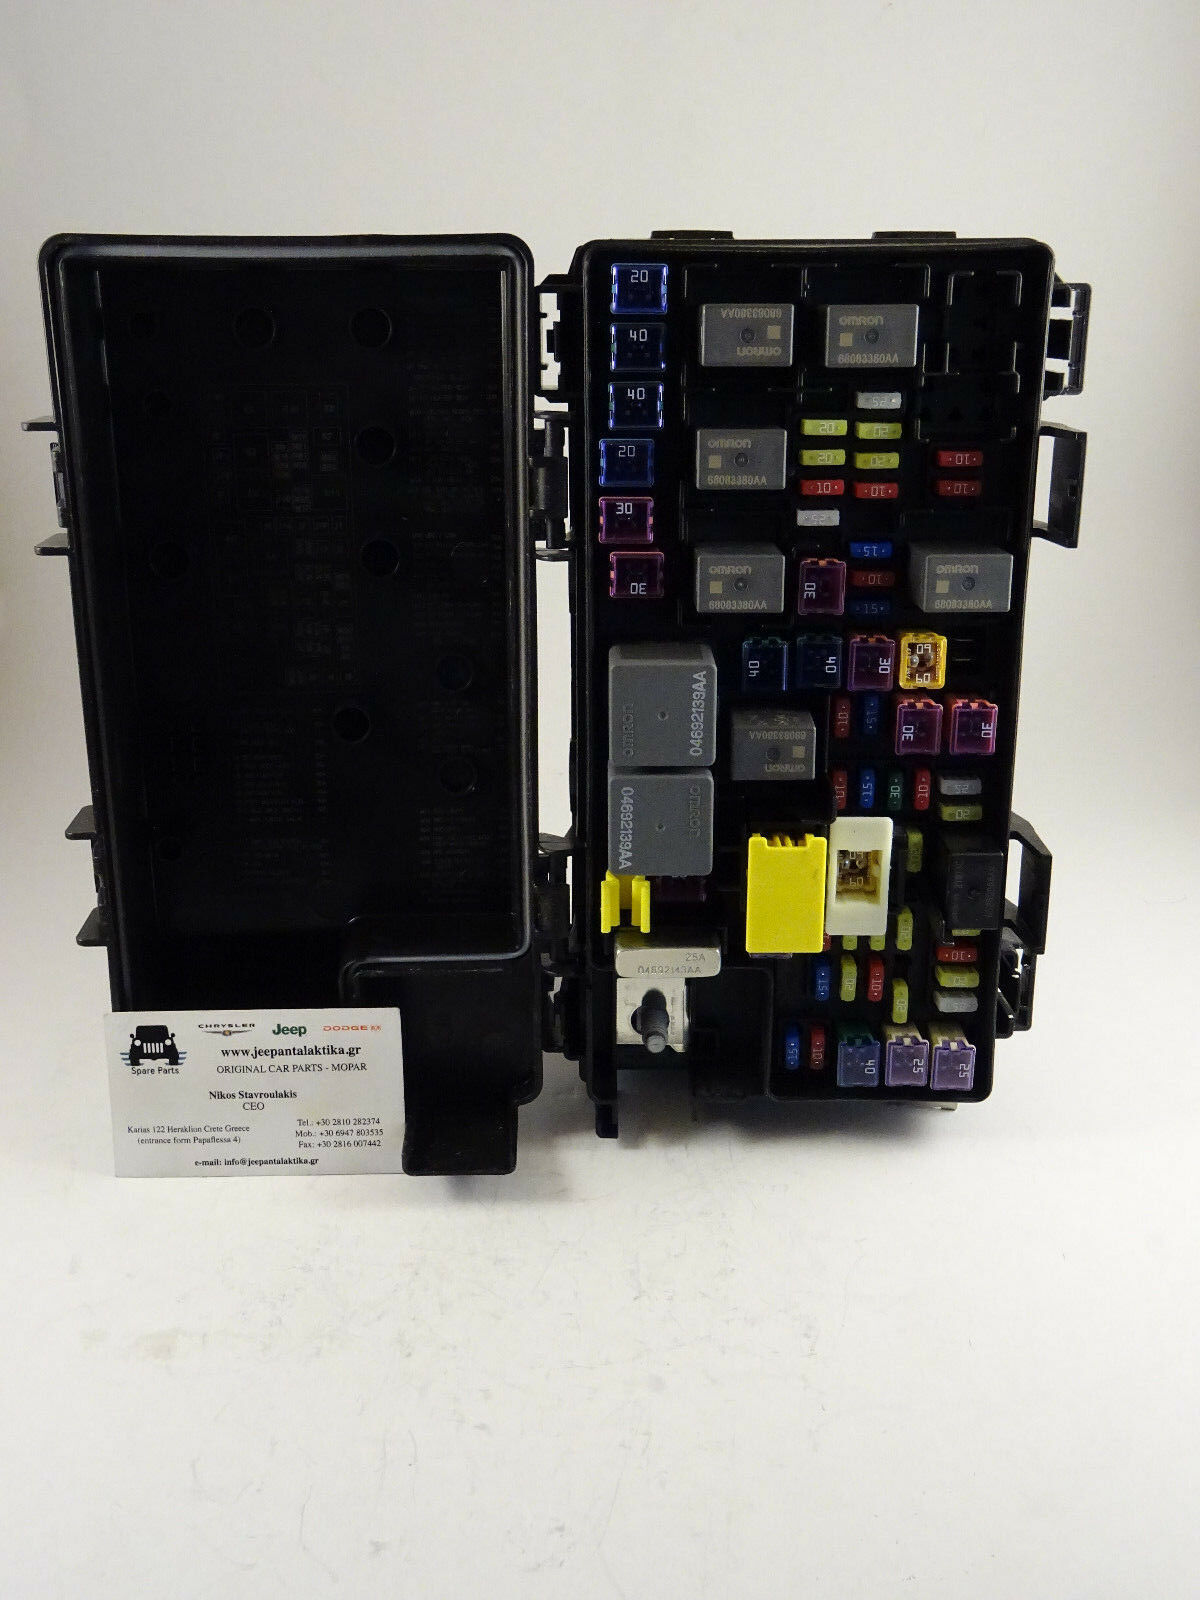 fuse relay distribution box jeep liberty kk 2008 4692235aj. Black Bedroom Furniture Sets. Home Design Ideas